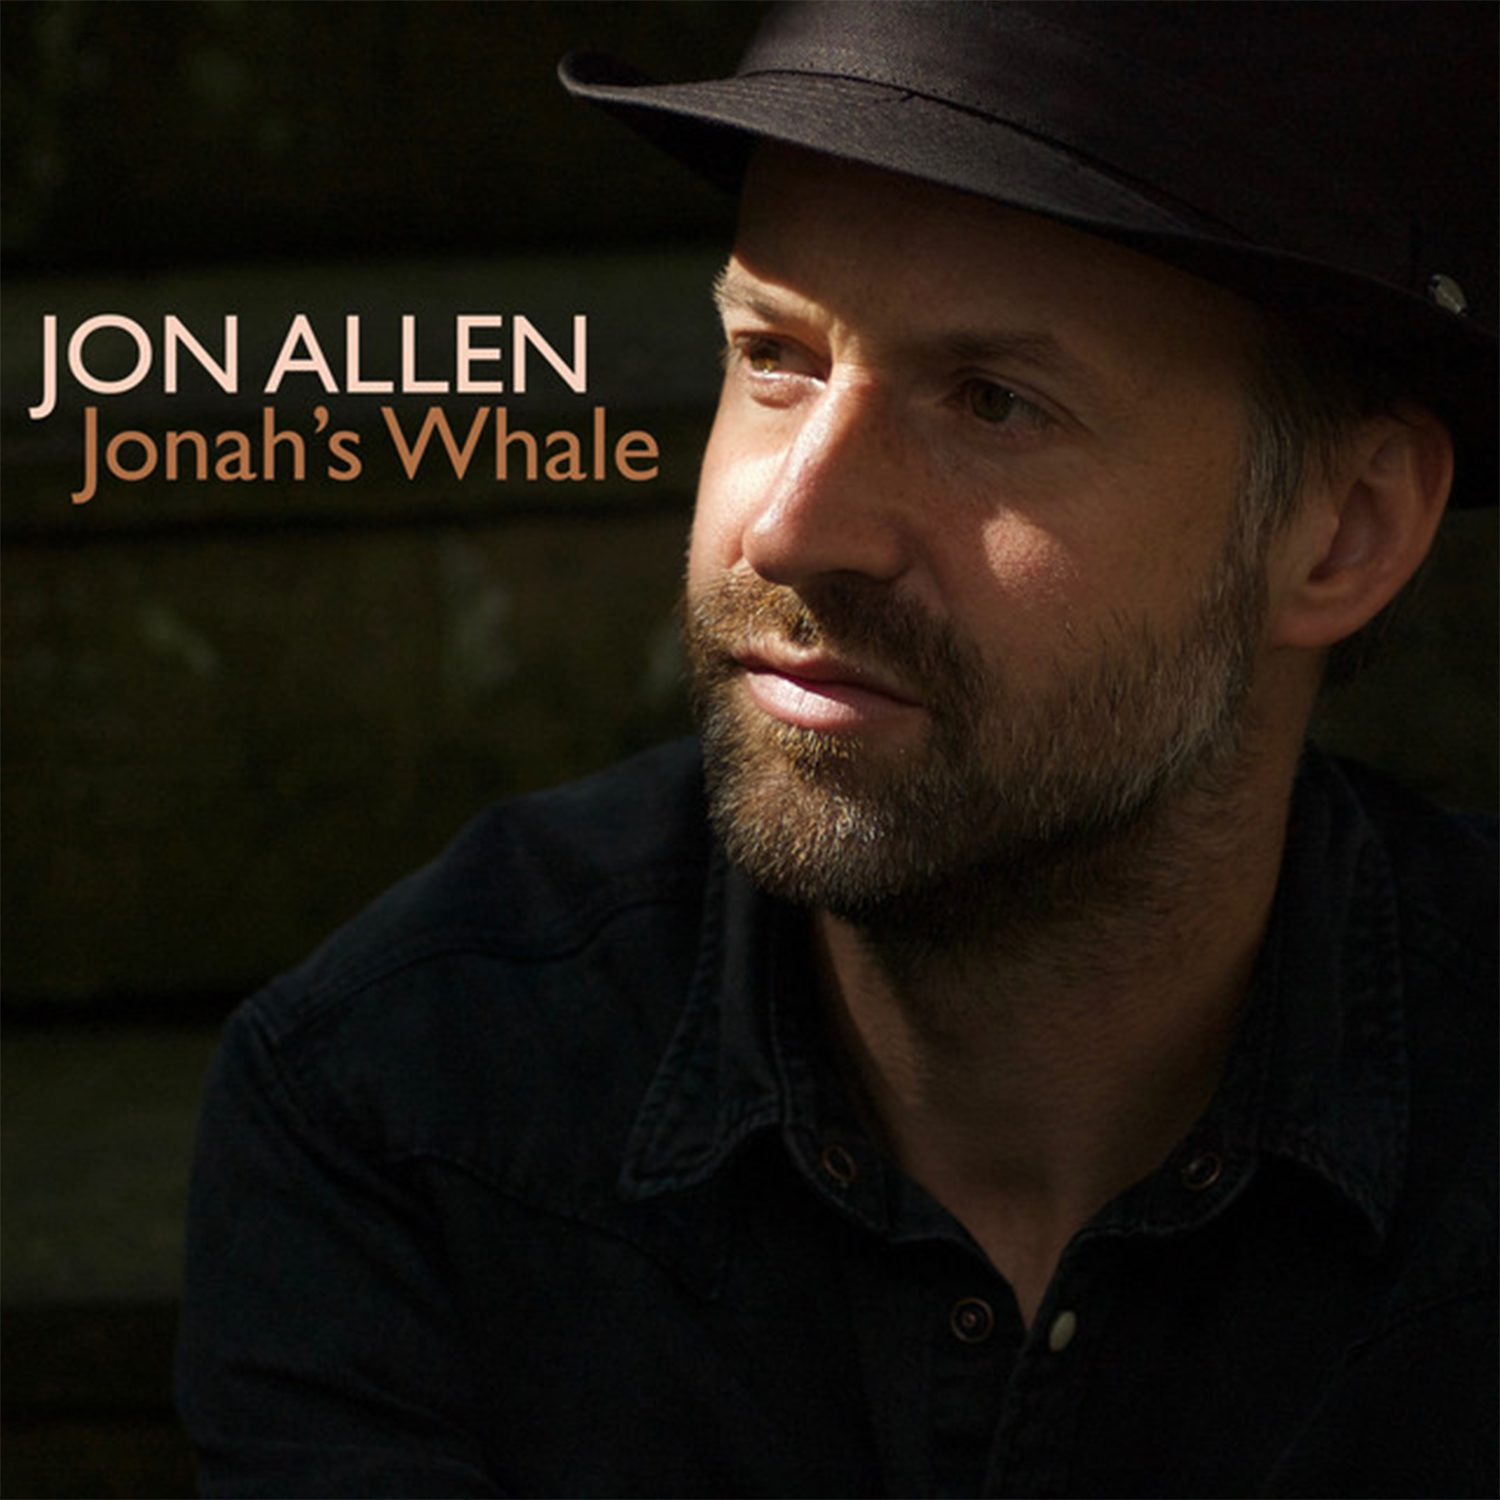 jon allen jonah's whale new single blue flame ok good records singer songwriter